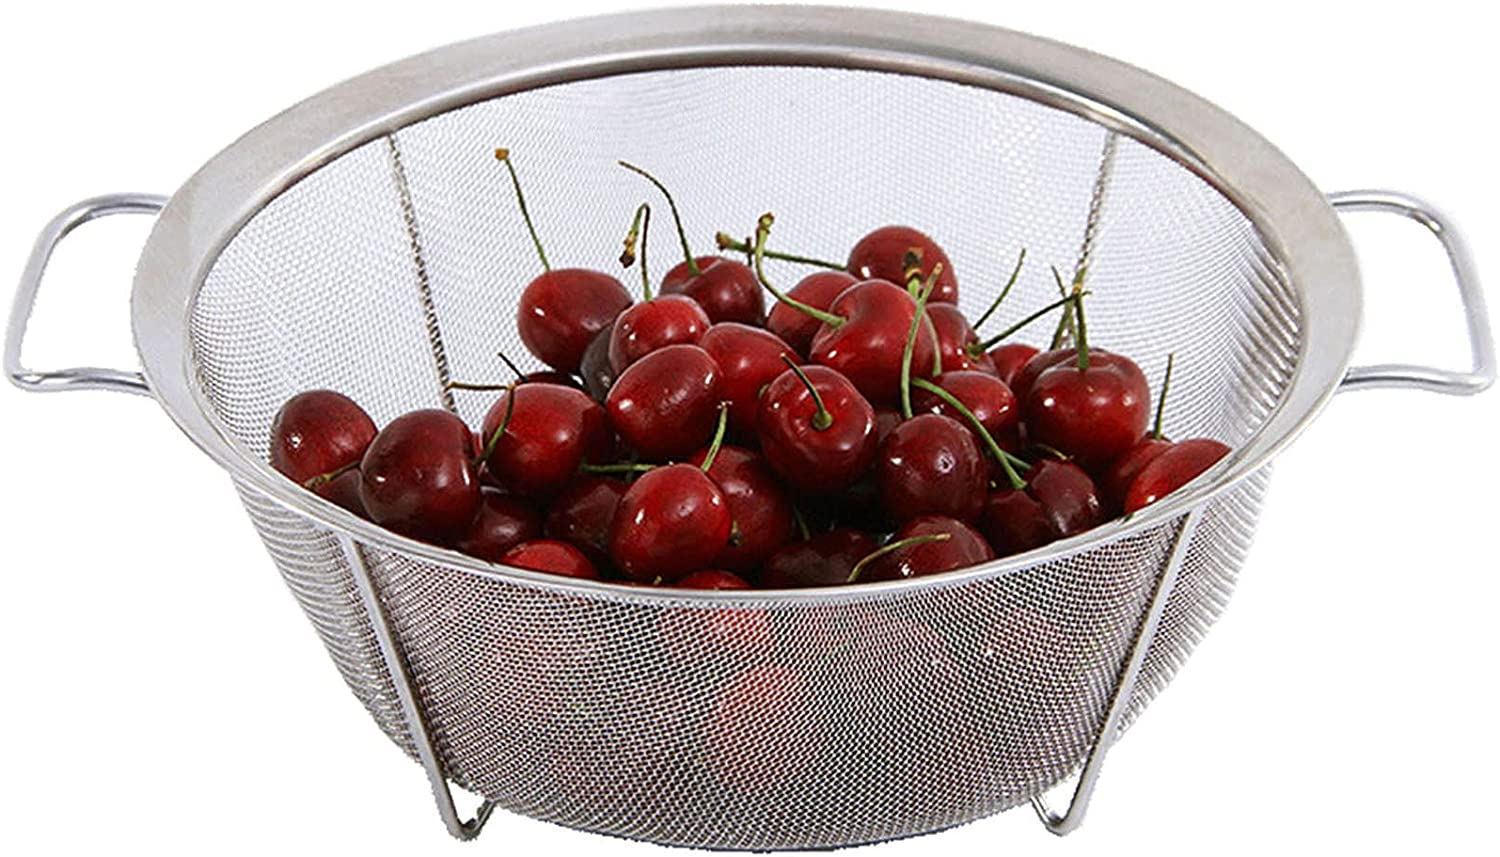 We OFFer at cheap prices AJIODA Stainless Steel Mesh Oklahoma City Mall Colander Basket Strainer Quart 4 Fi